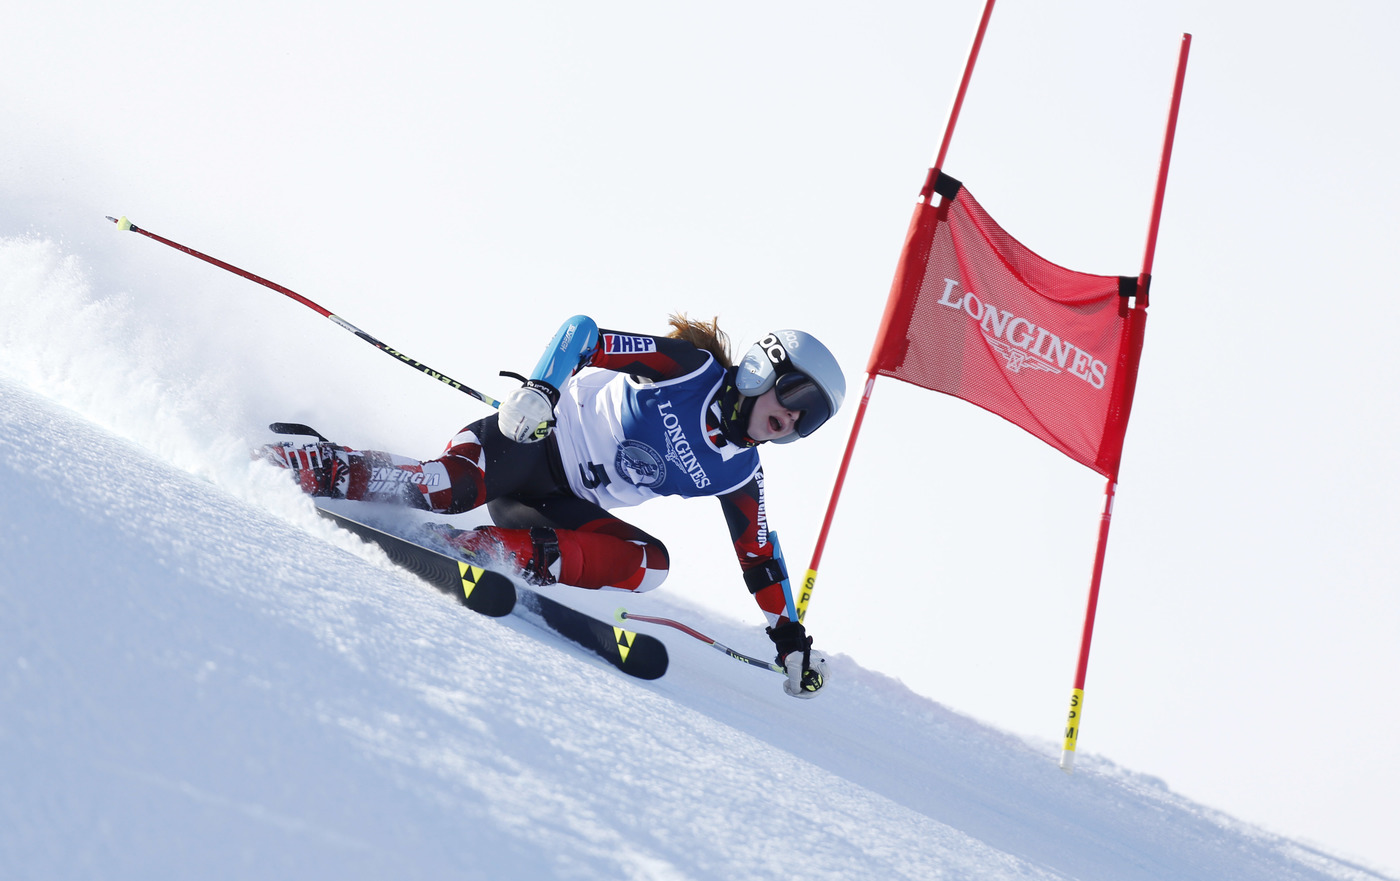 Longines Alpine Skiing Event: LONGINES FUTURE SKI CHAMPIONS - THE BEST YOUNG FEMALE SKIERS 3